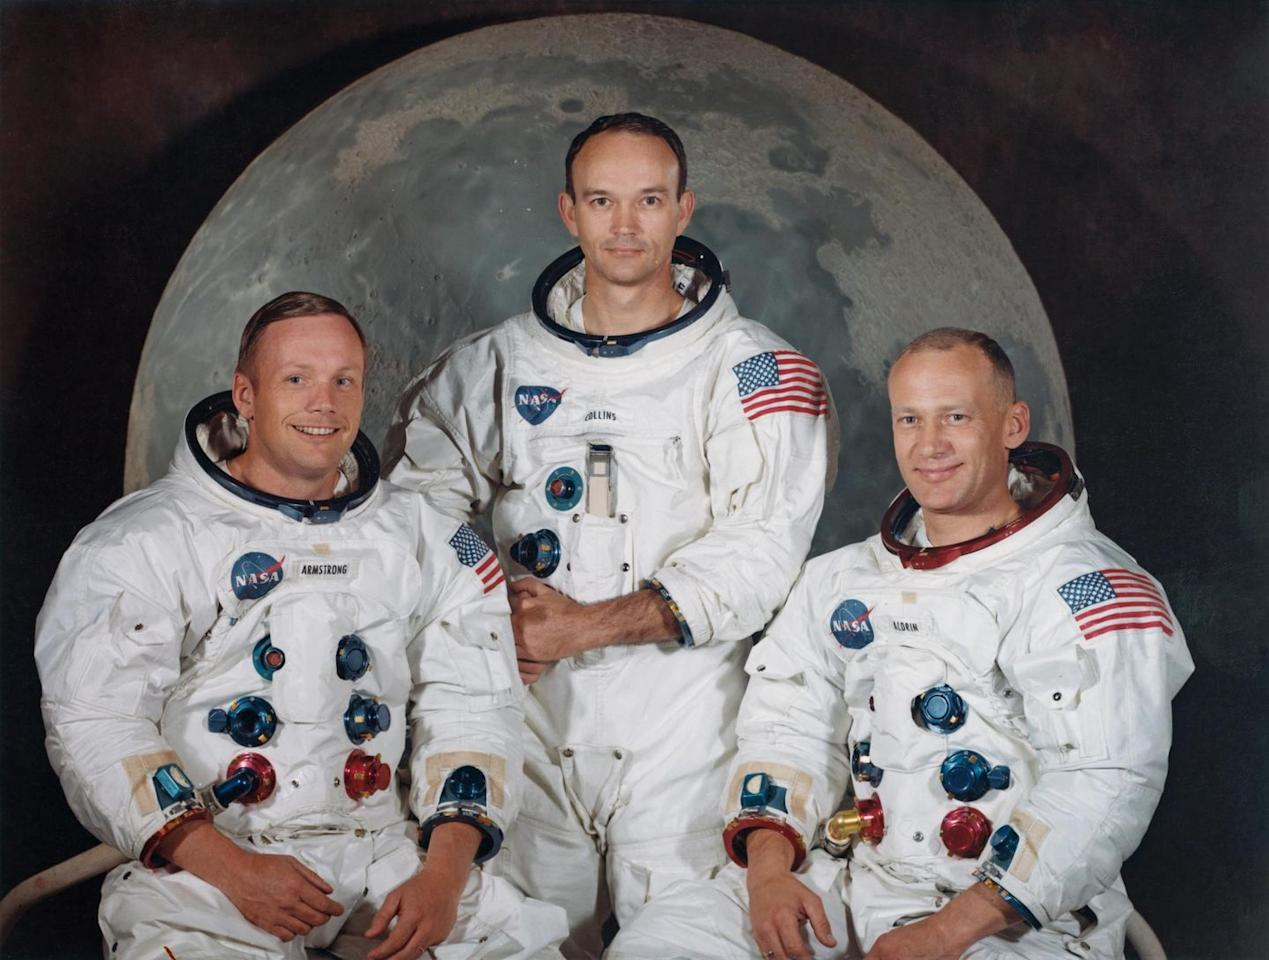 """<p>The three crew members of NASA's Apollo 11 lunar landing mission pose for a group portrait a few weeks before the launch in May 1969. From left to right, Commander Neil Armstrong, Command Module Pilot Michael Collins and Lunar Module Pilot Edwin """"Buzz"""" Aldrin Jr.</p>"""